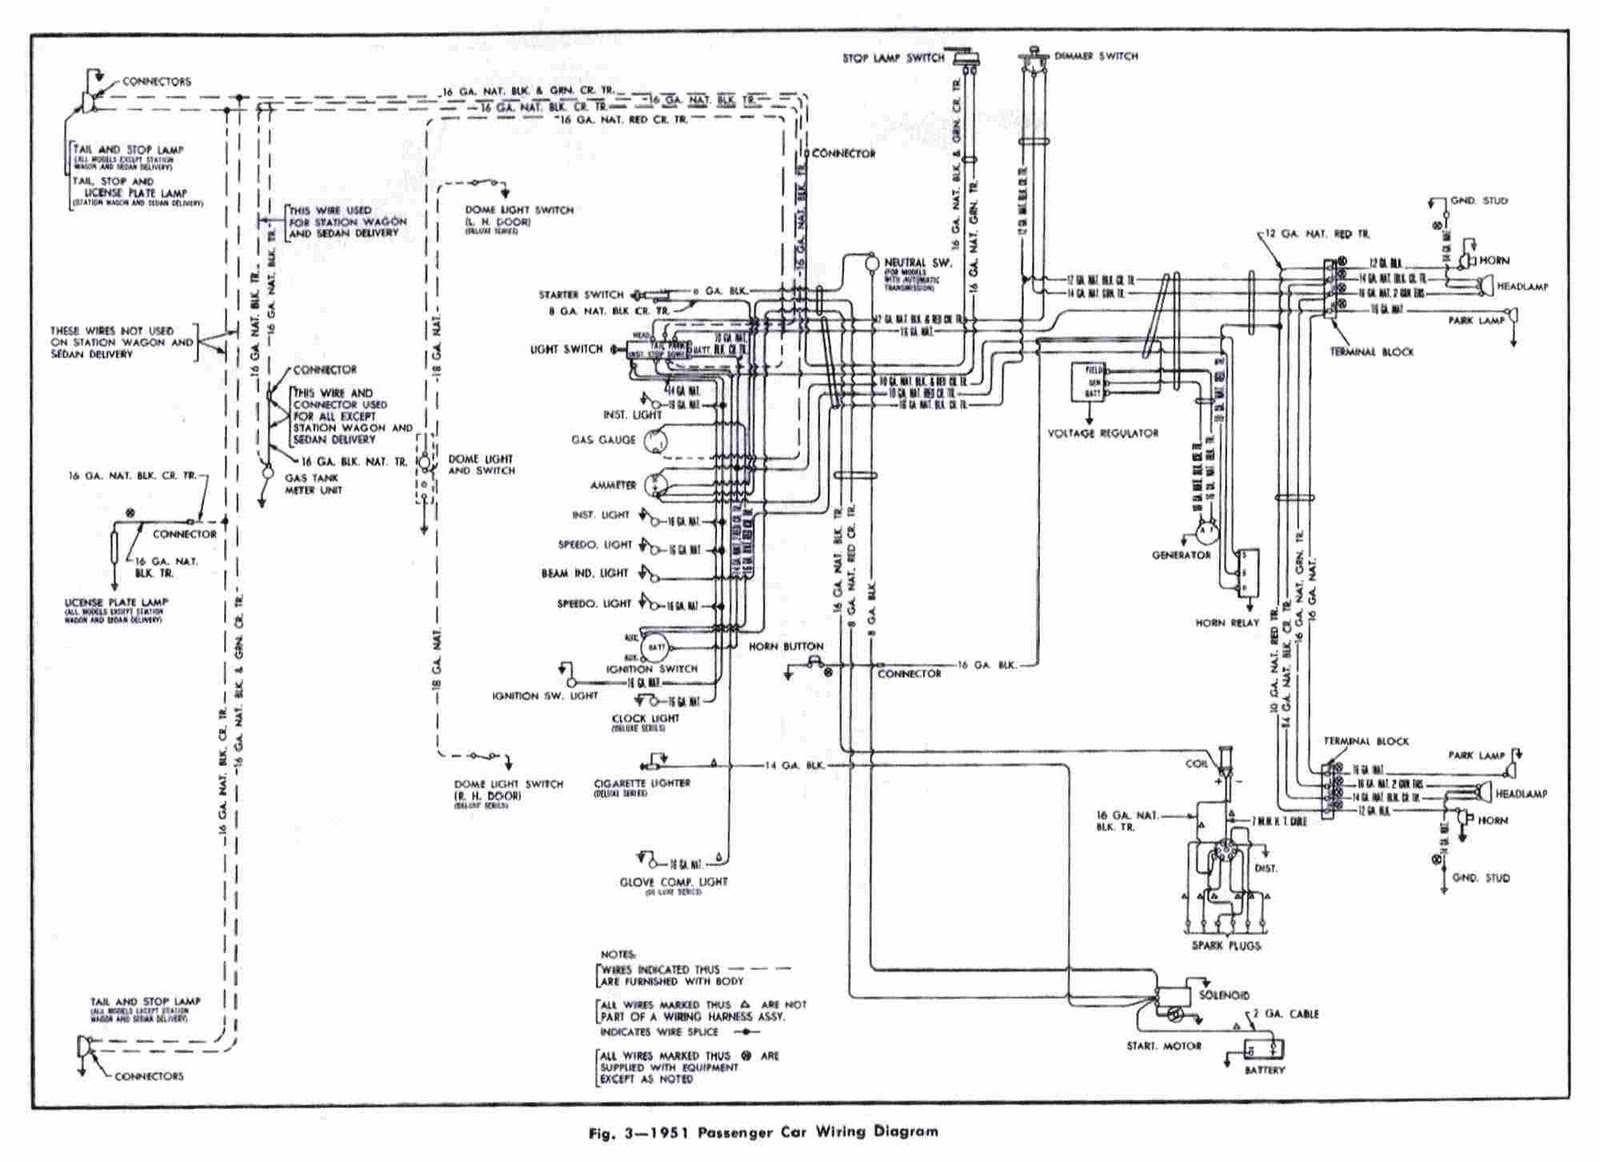 Px Chevy Cid also Corvette Wiper Wiring Diagram Corvette Starter Wiring For Wiring Diagram Wiper Motor moreover Mustang Vacuum Diagram Air Conditioning besides Corvette Wiper Motor Schematic Made Simple furthermore Wiring Extlights. on 1972 corvette ac wiring diagram